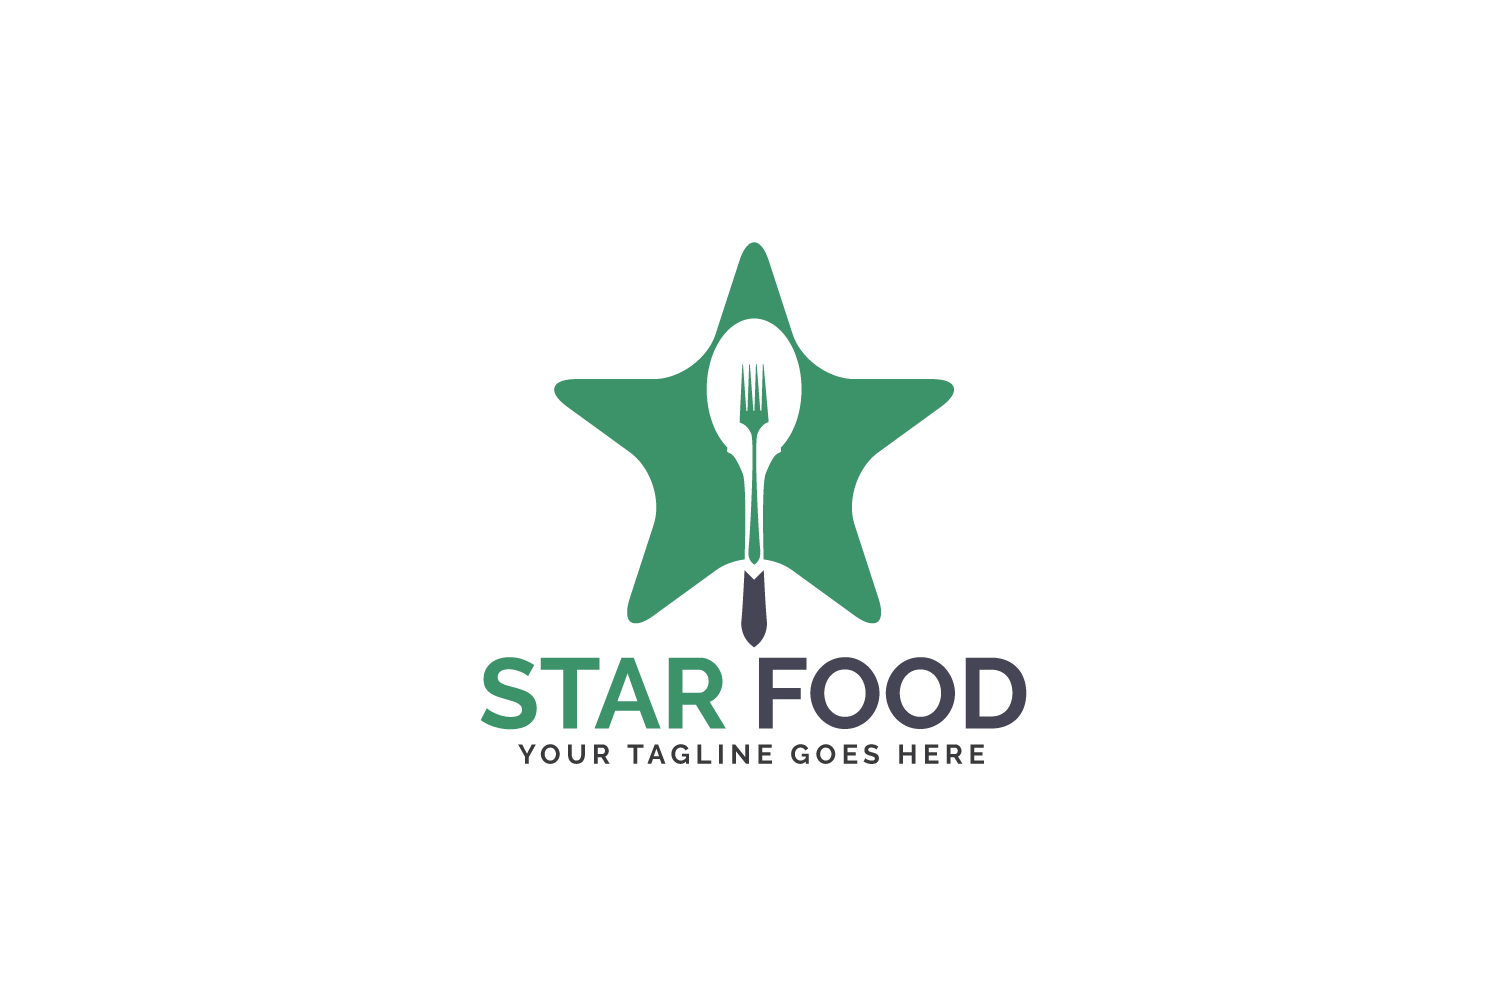 Star Food Logo Design. example image 2